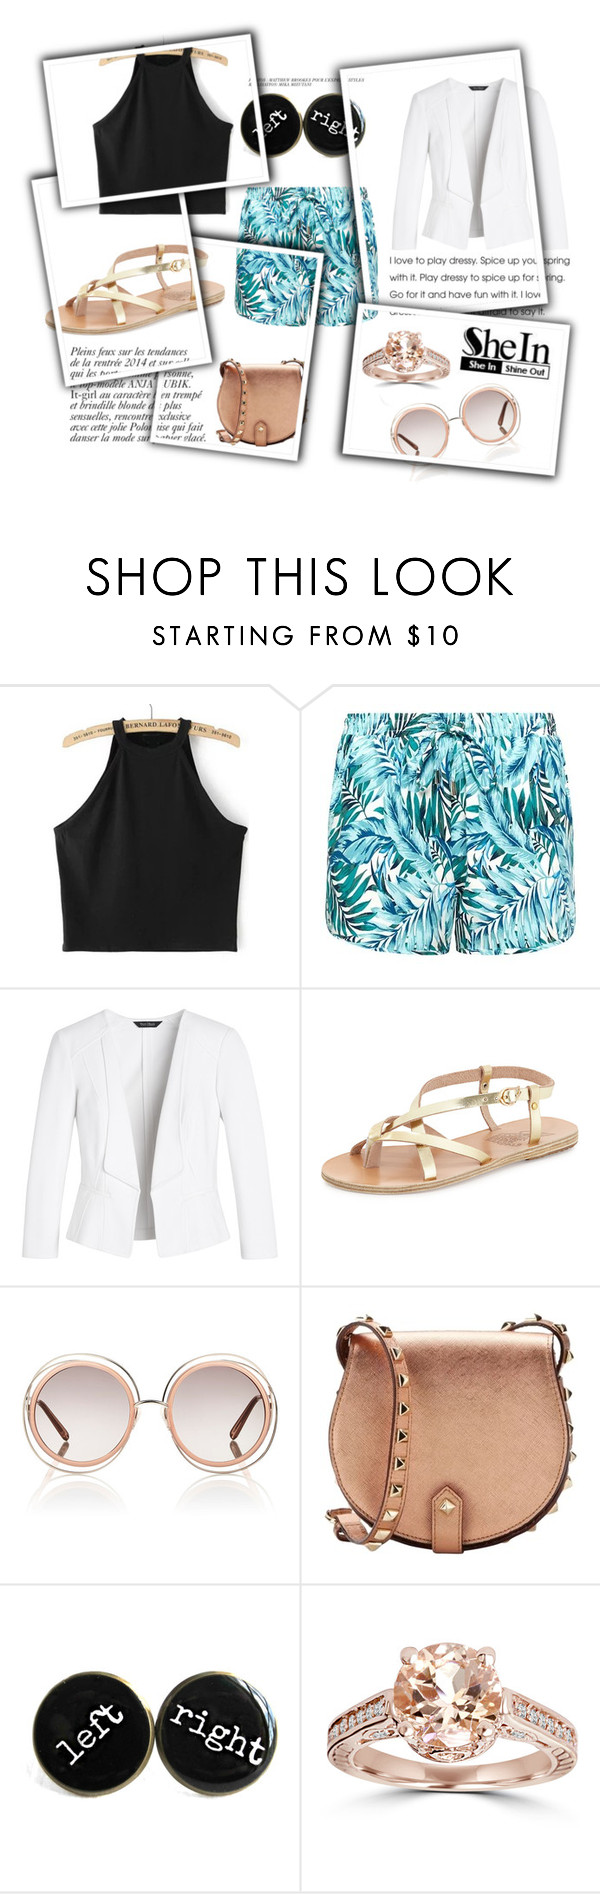 Black Tank Top By Isis Anubis5 Liked On Polyvore Featuring Anja White